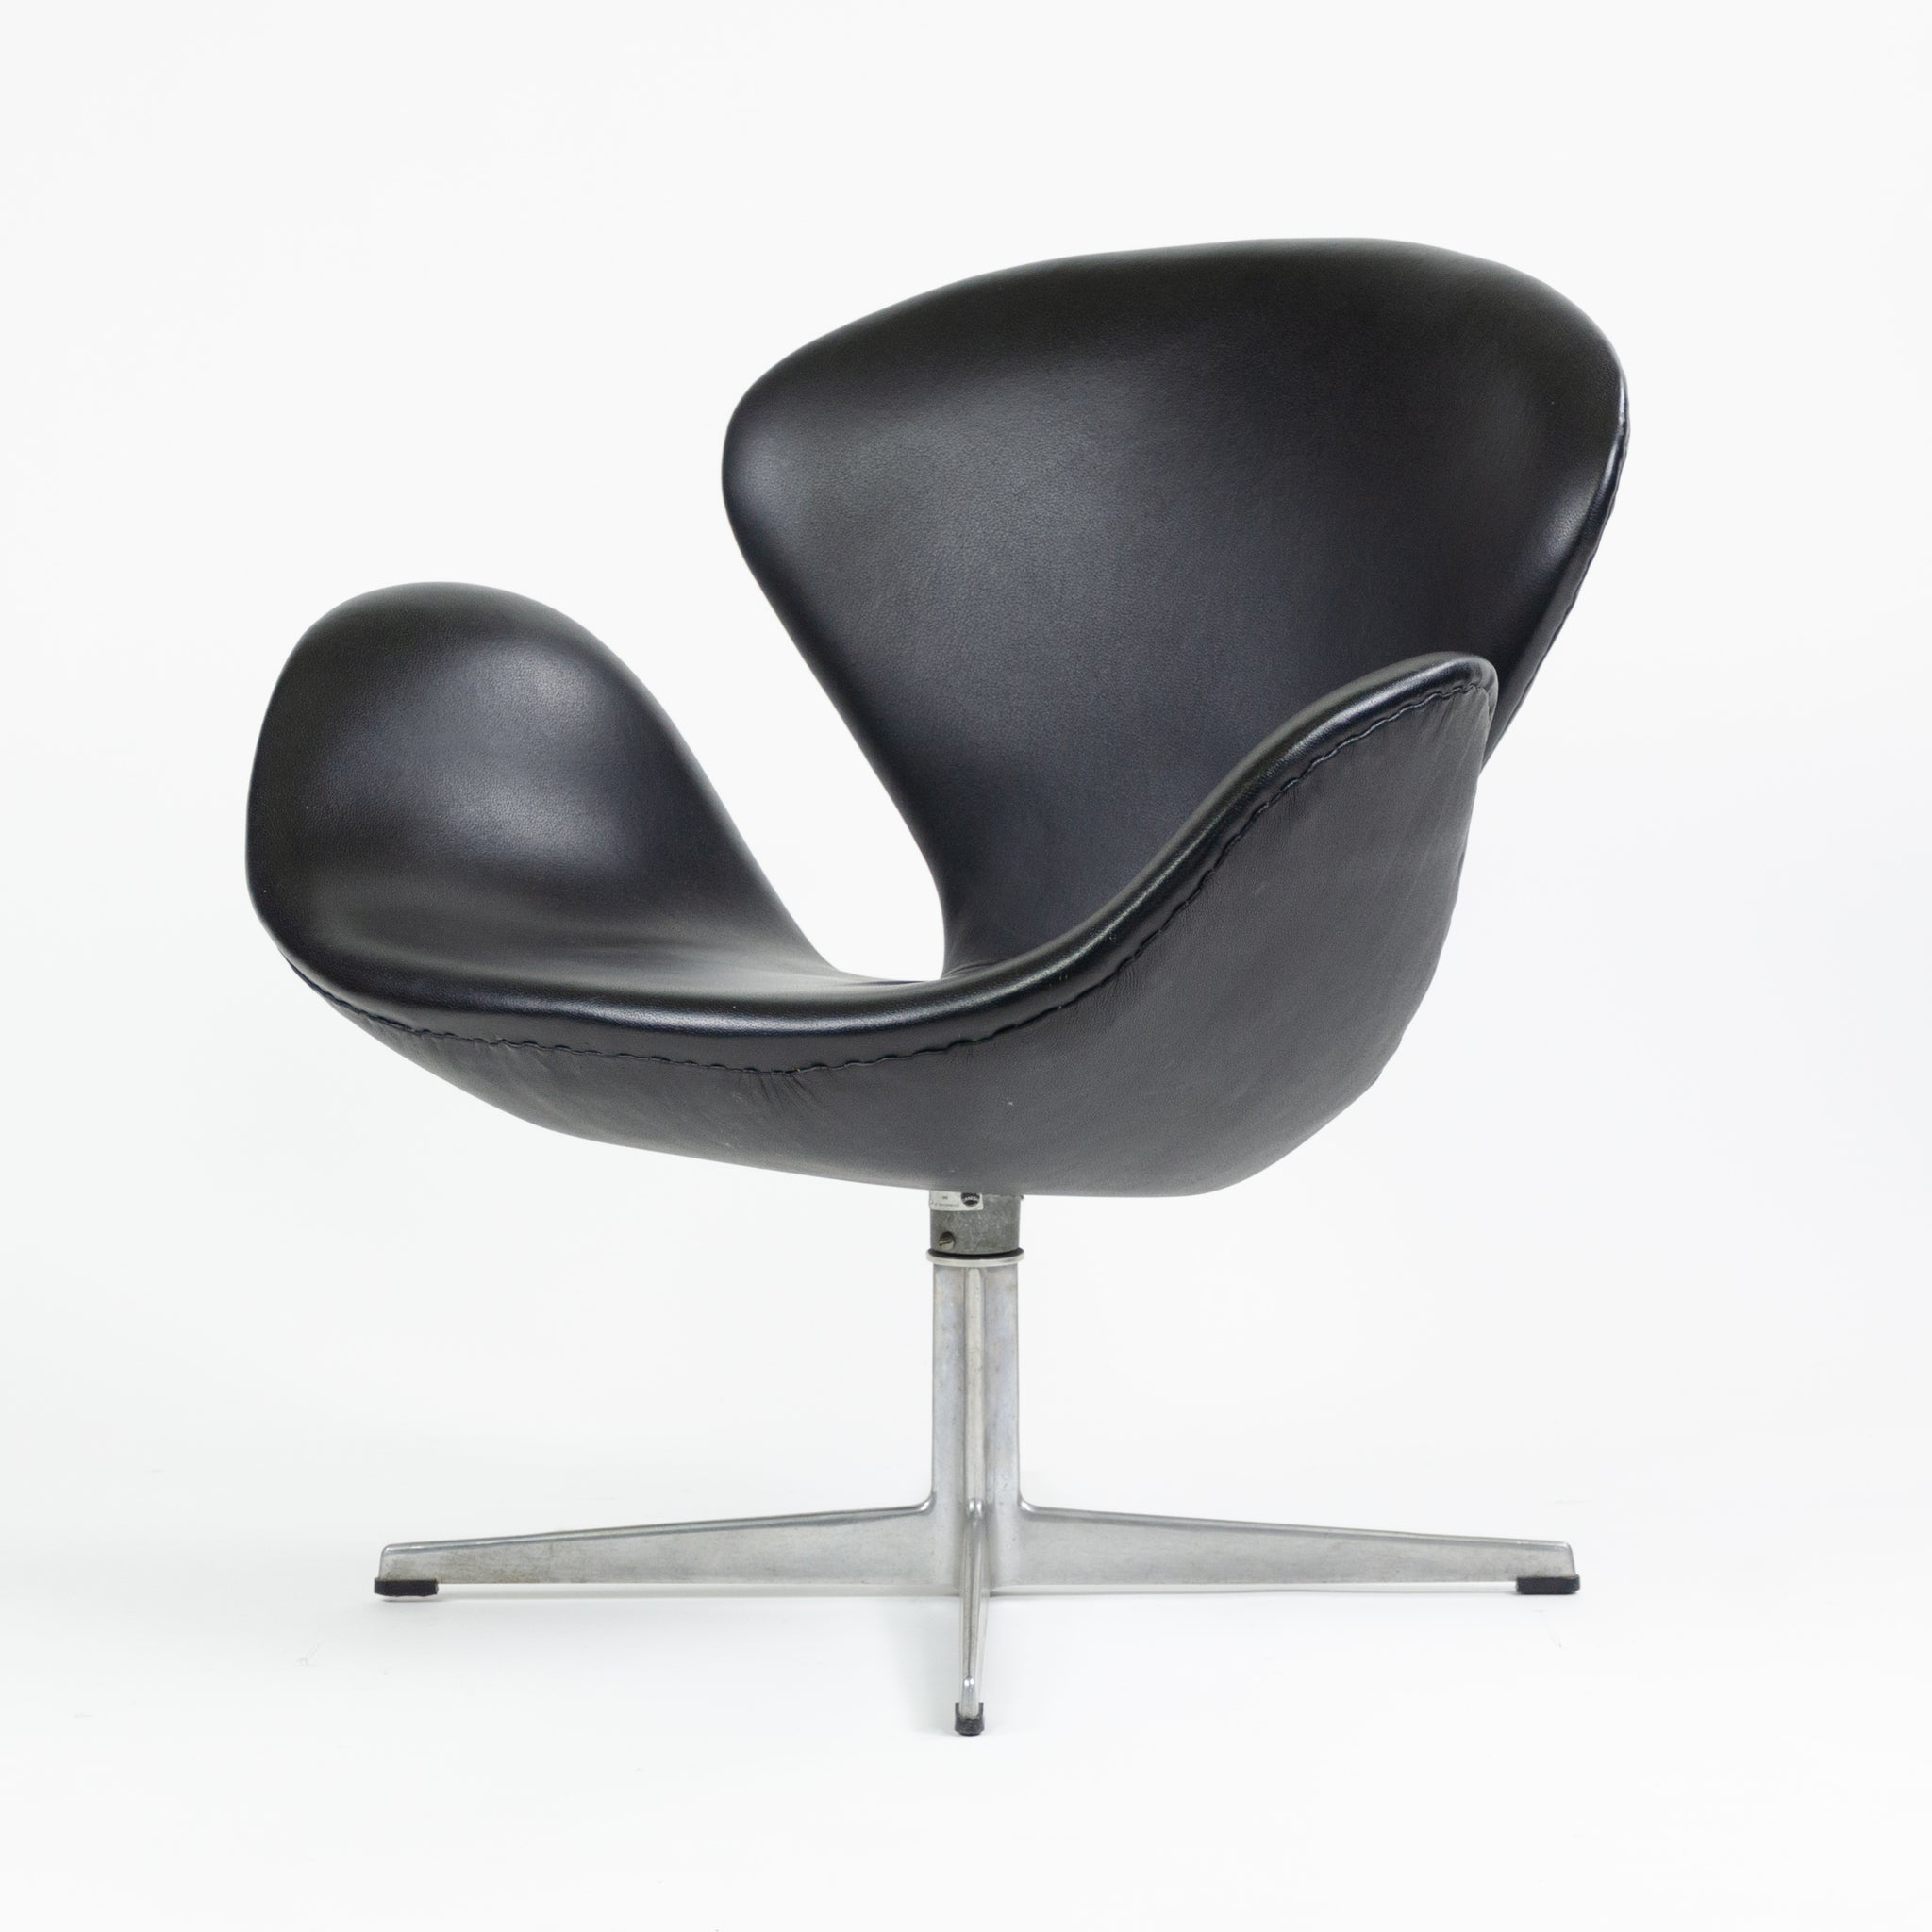 SOLD 1960's Arne Jacobsen Fritz Hansen Denmark Swan Chair Leather Upholstery